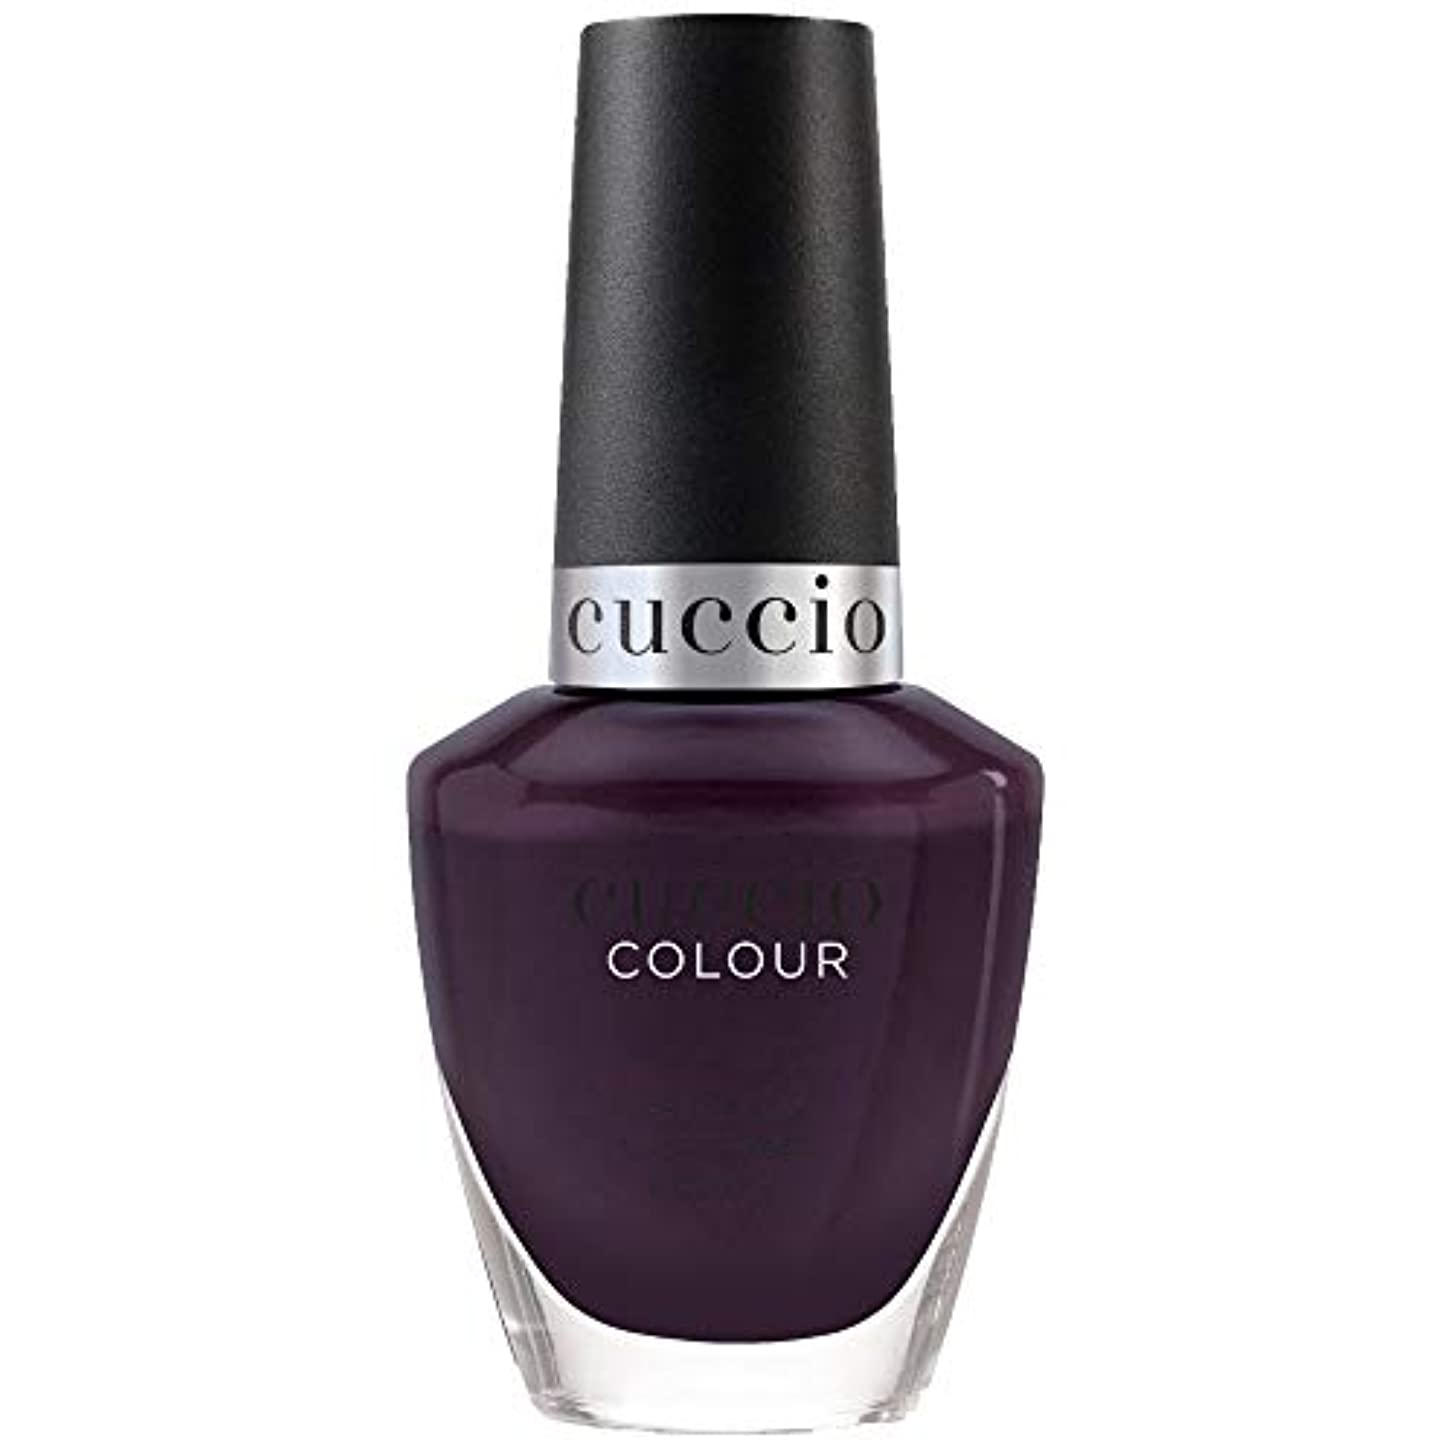 詐欺師軍隊熟考するCuccio Colour Nail Lacquer - Tapestry Collection - Quilty As Charged - 13 mL / 0.43 oz